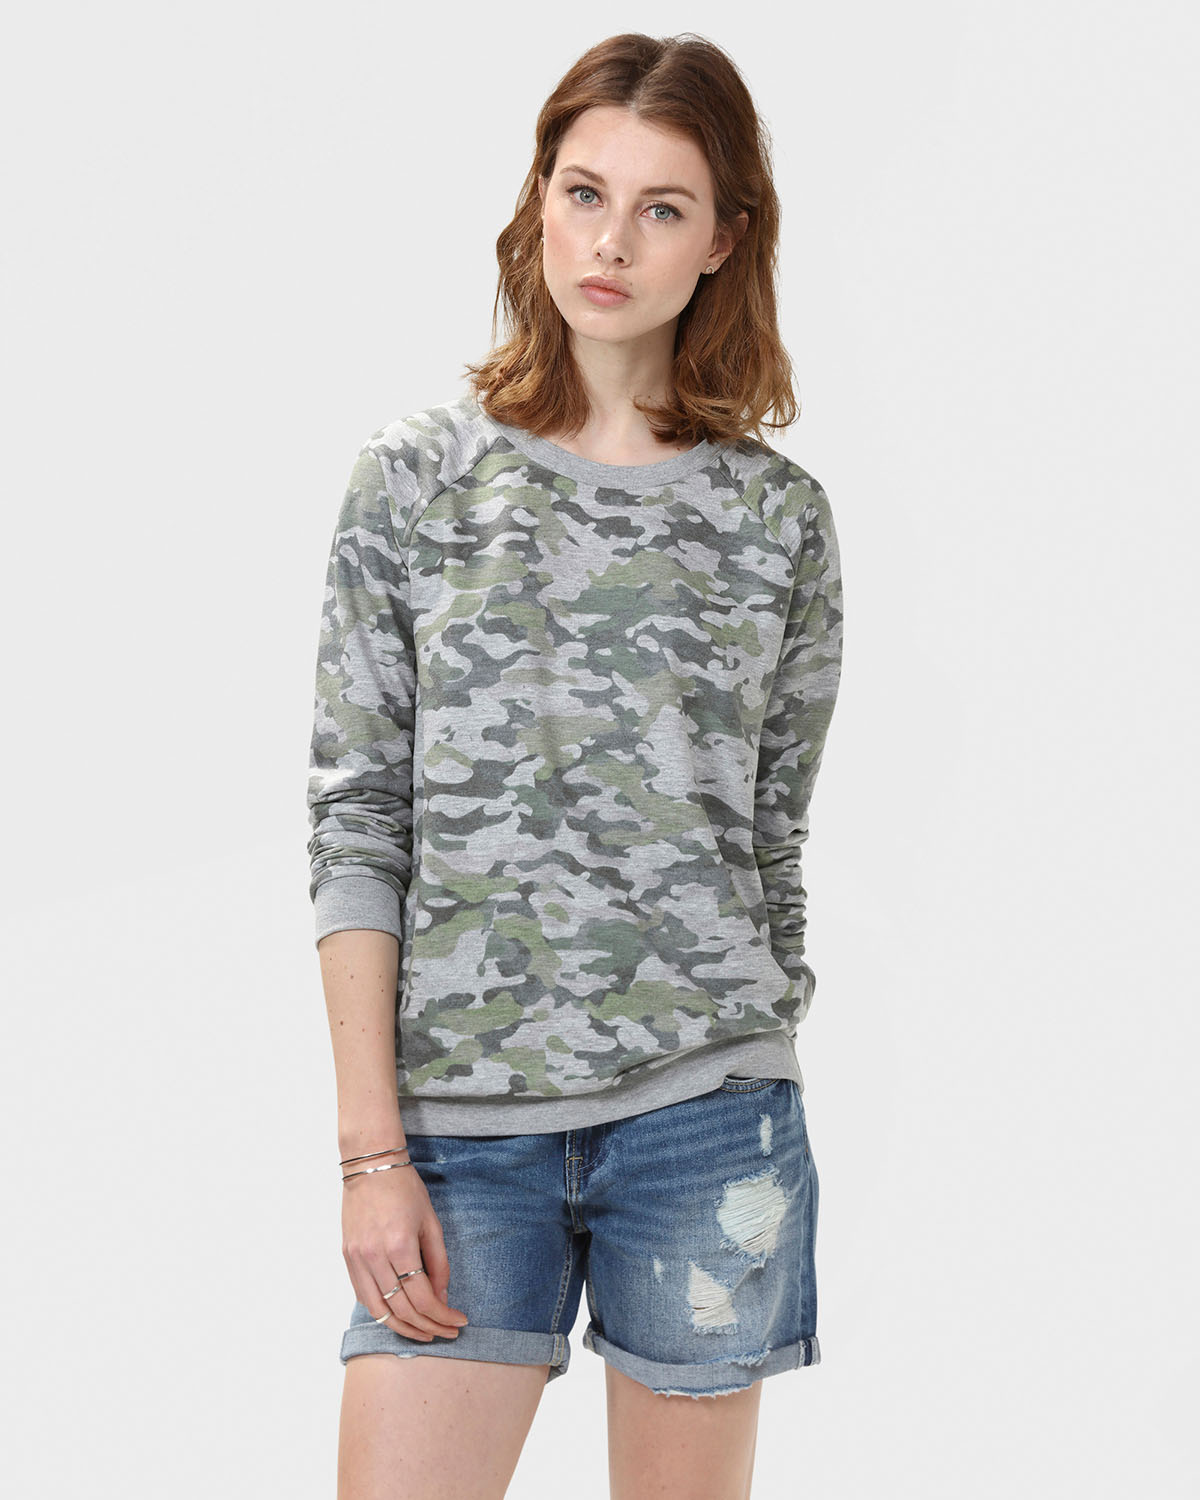 Dames Trui Met Print.Dames Army Print Sweater 79317177 We Fashion